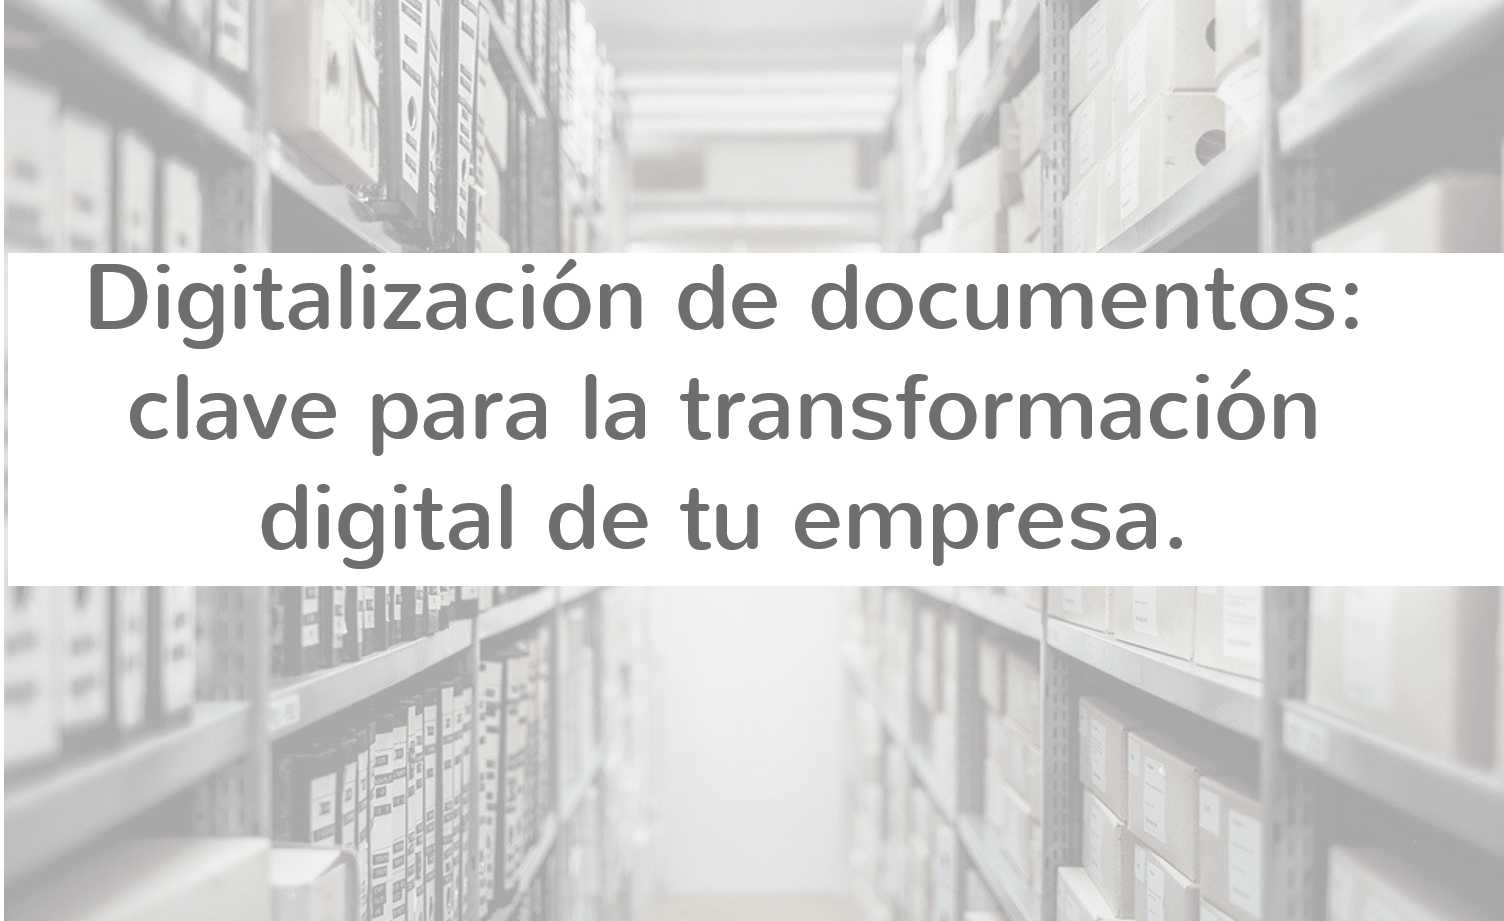 Digitalización de documentos: clave para la transformación digital de tu empresa